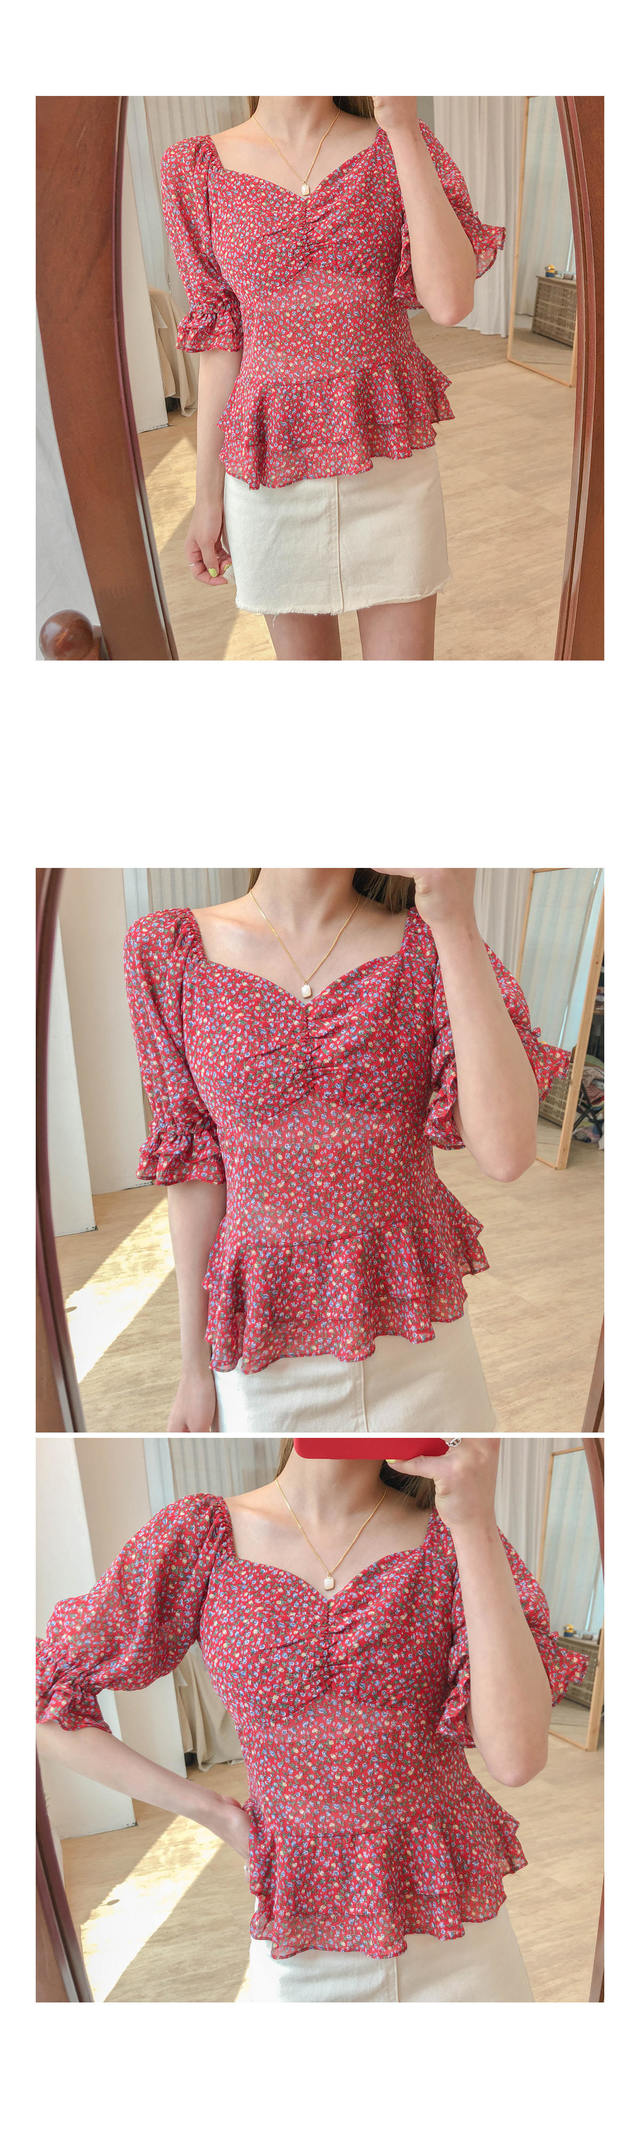 Frill candy flower blouse